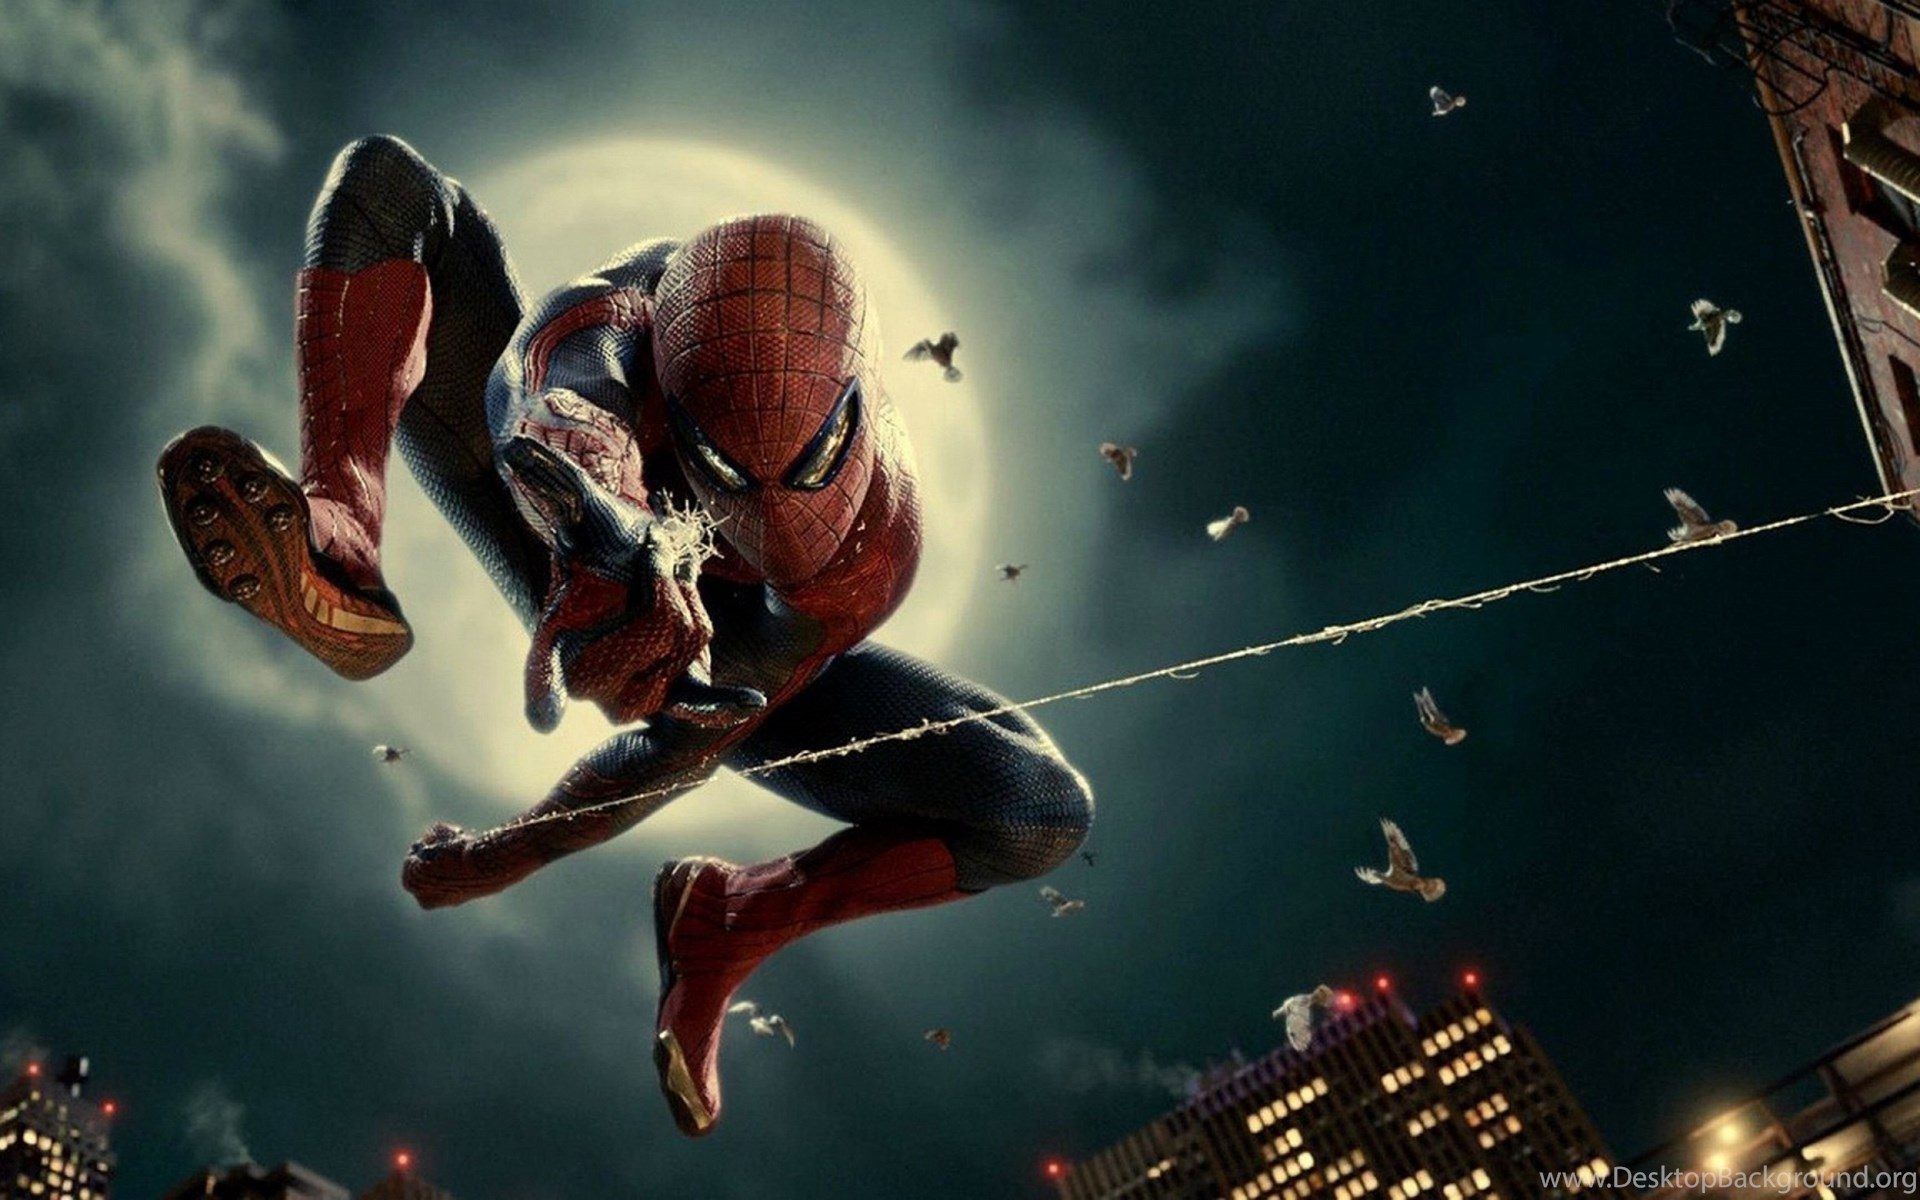 Download wallpapers 3840x2160 the amazing spider man - Spider hd images download ...